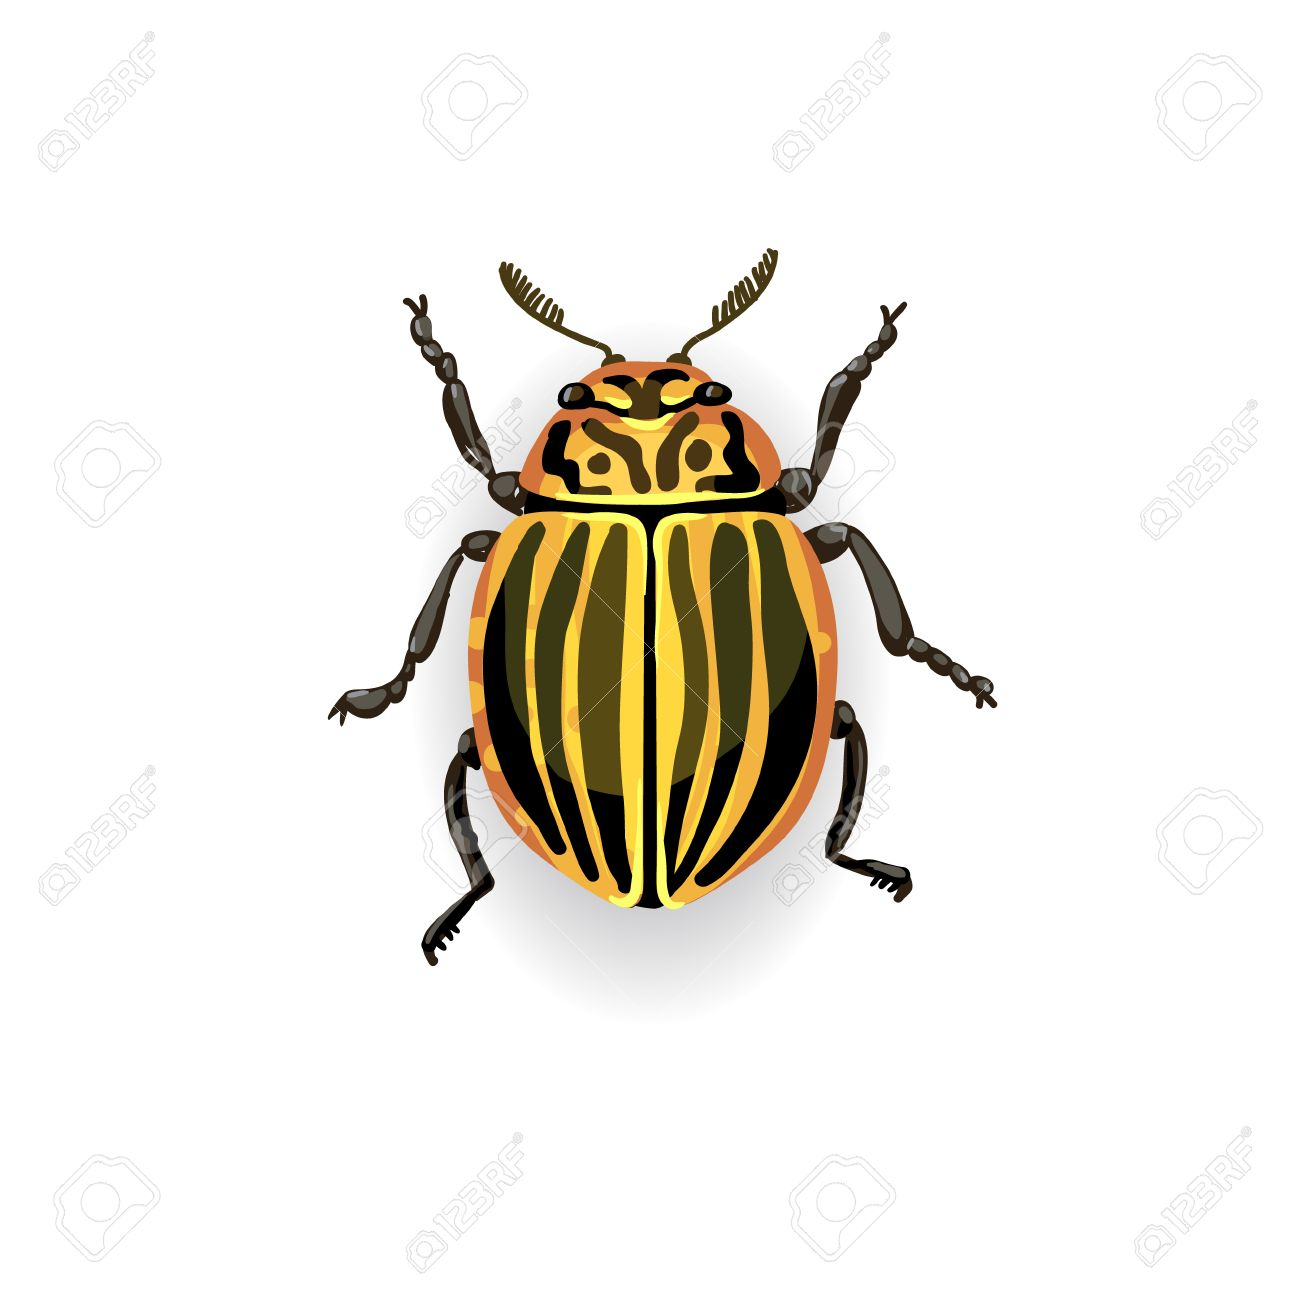 colorado potato beetle colorful vector drawing of small striped